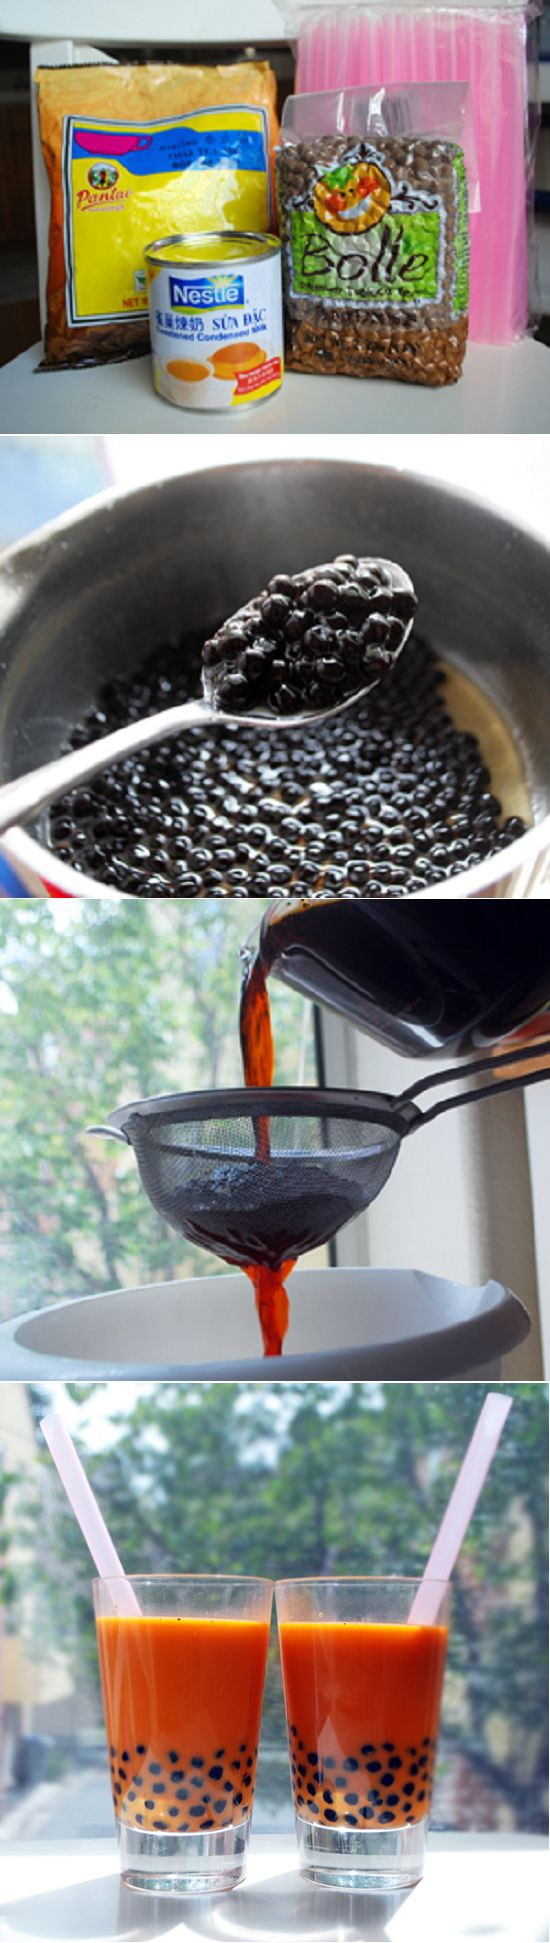 most-popular-bubble-tea-in-thailand-recipe-by-cupcakepedia.png (550×1943)